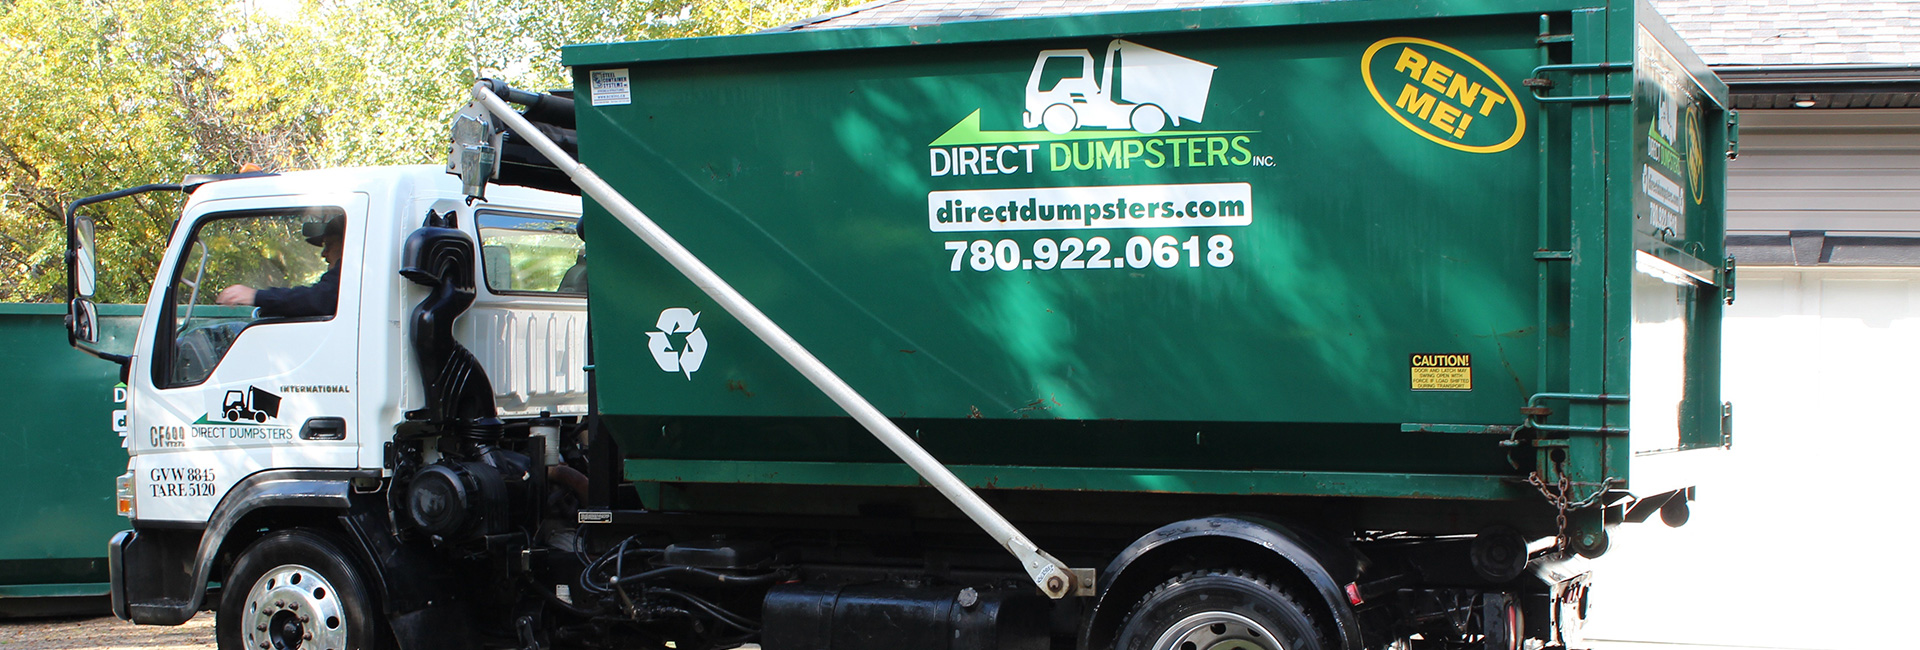 Direct Dumpsters Garbage Bin Delivery